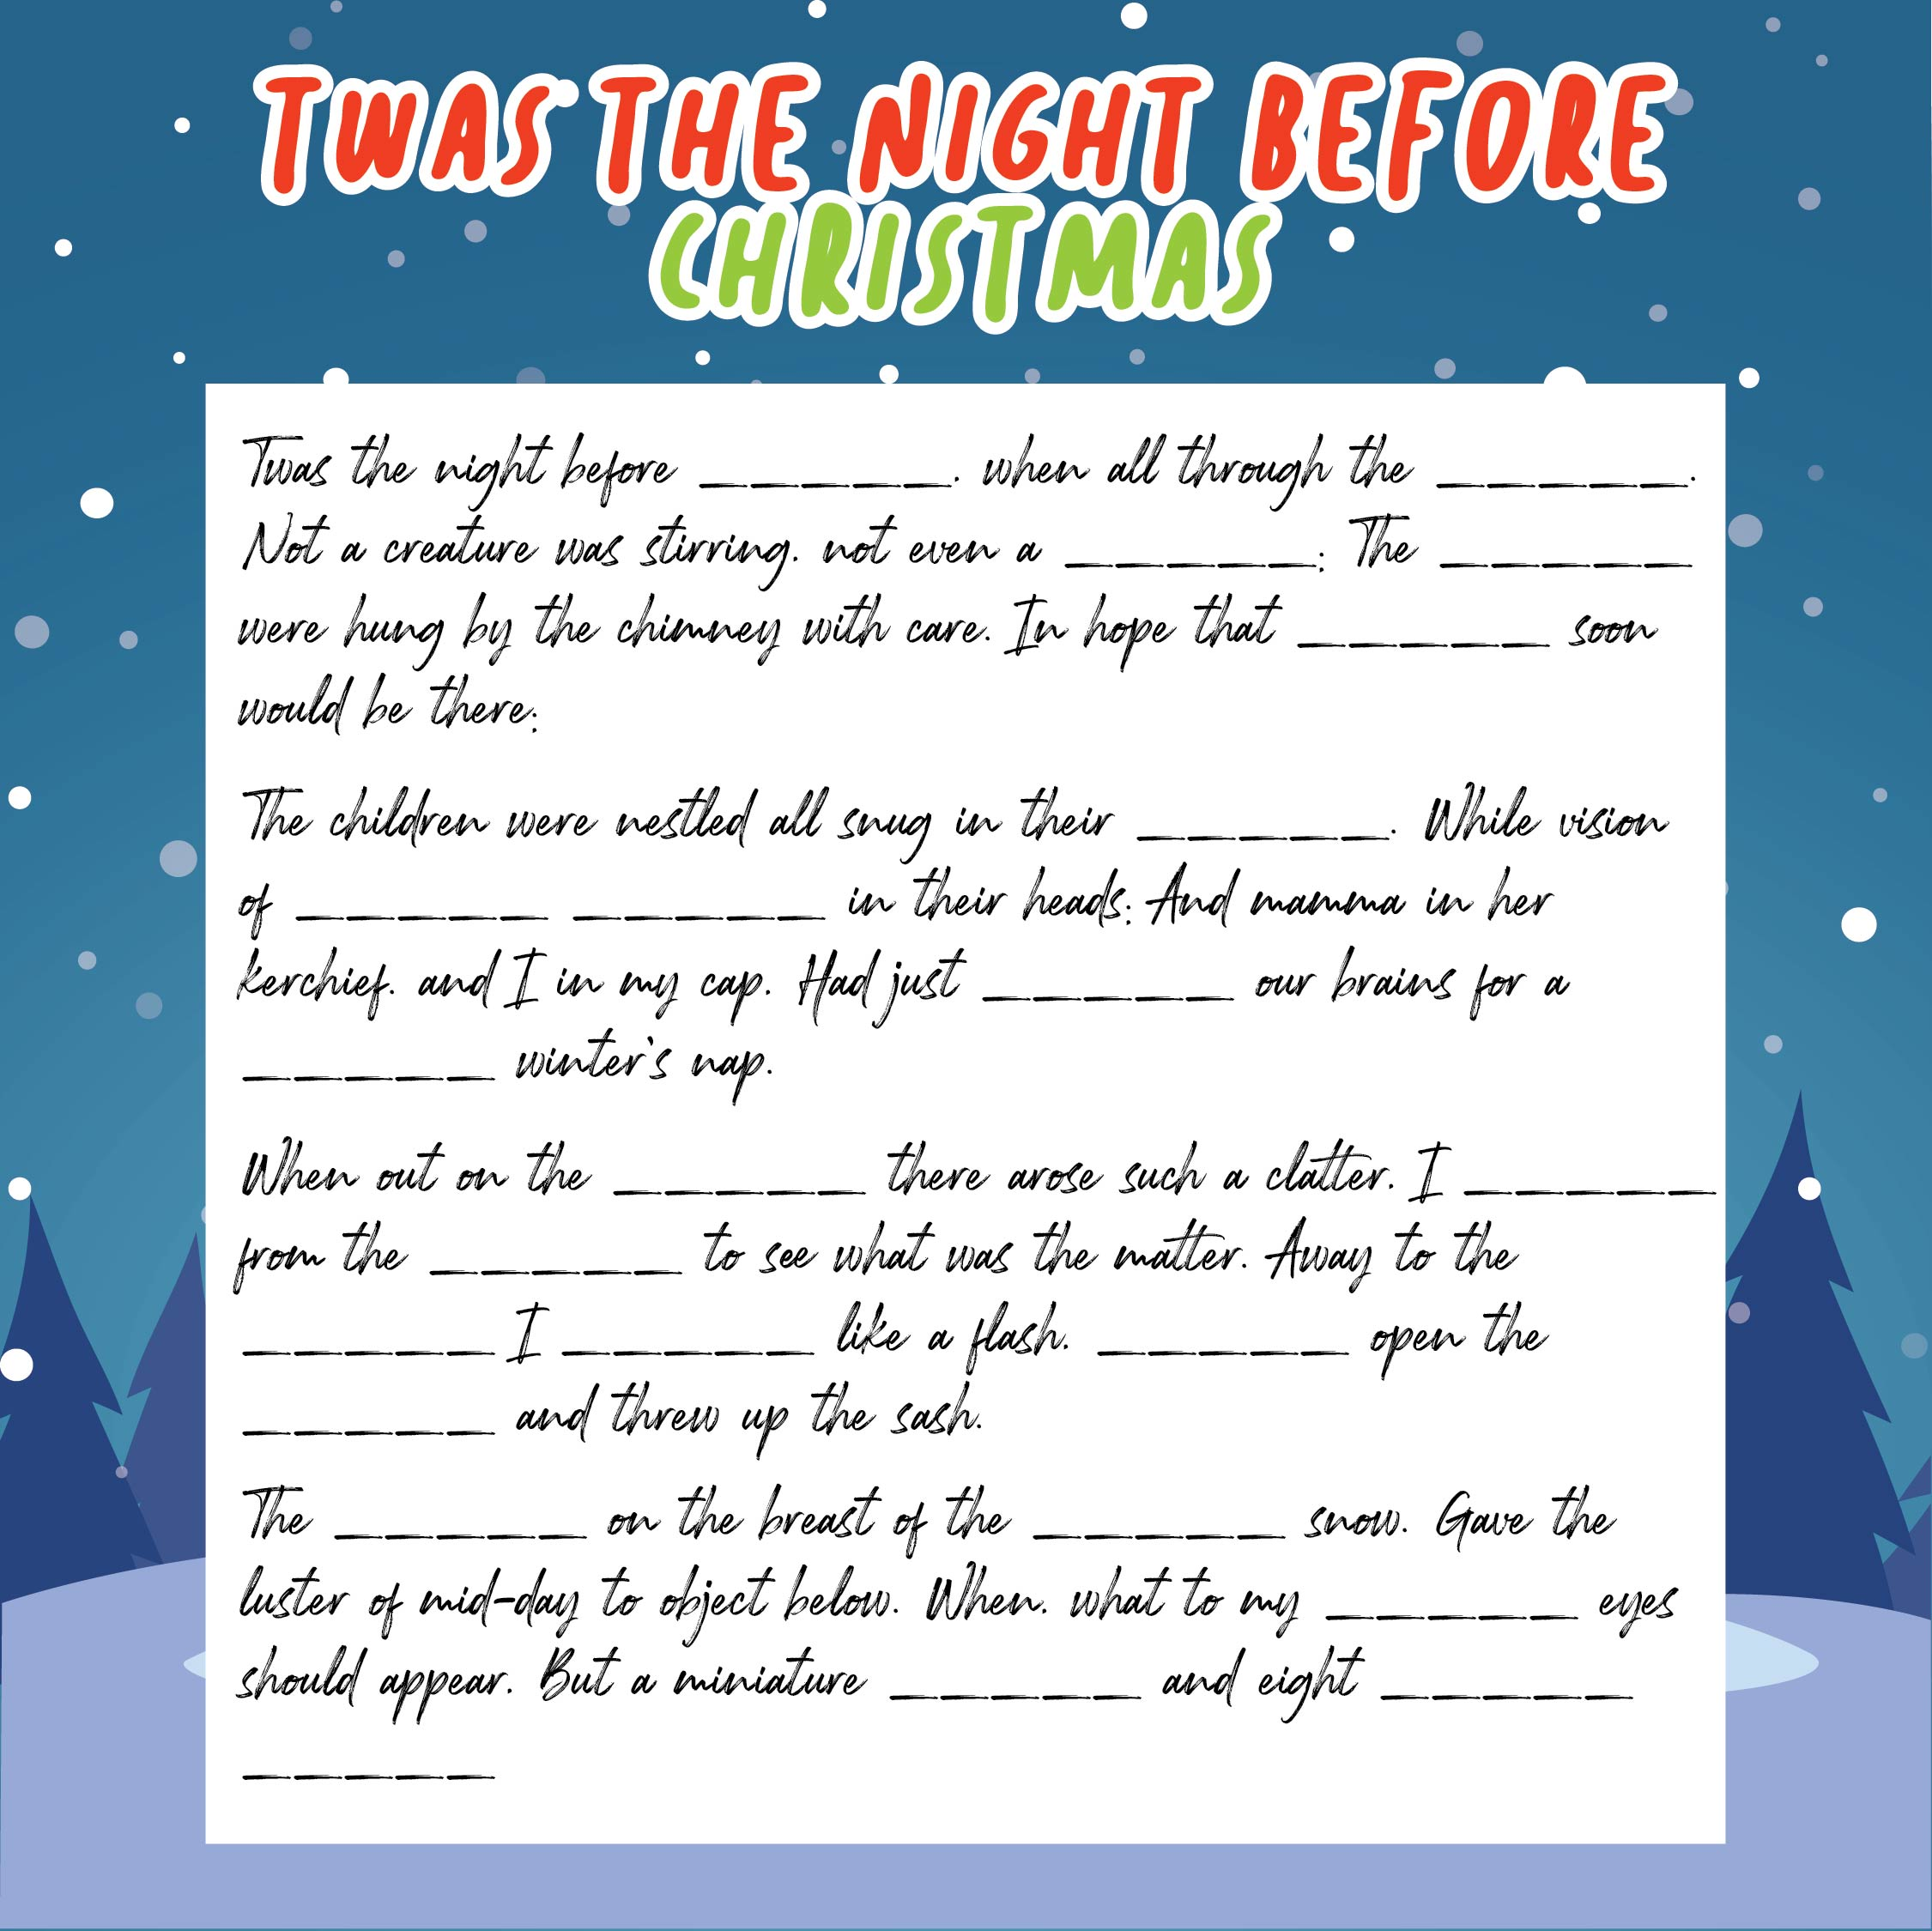 Twas the Night Before Christmas Apps